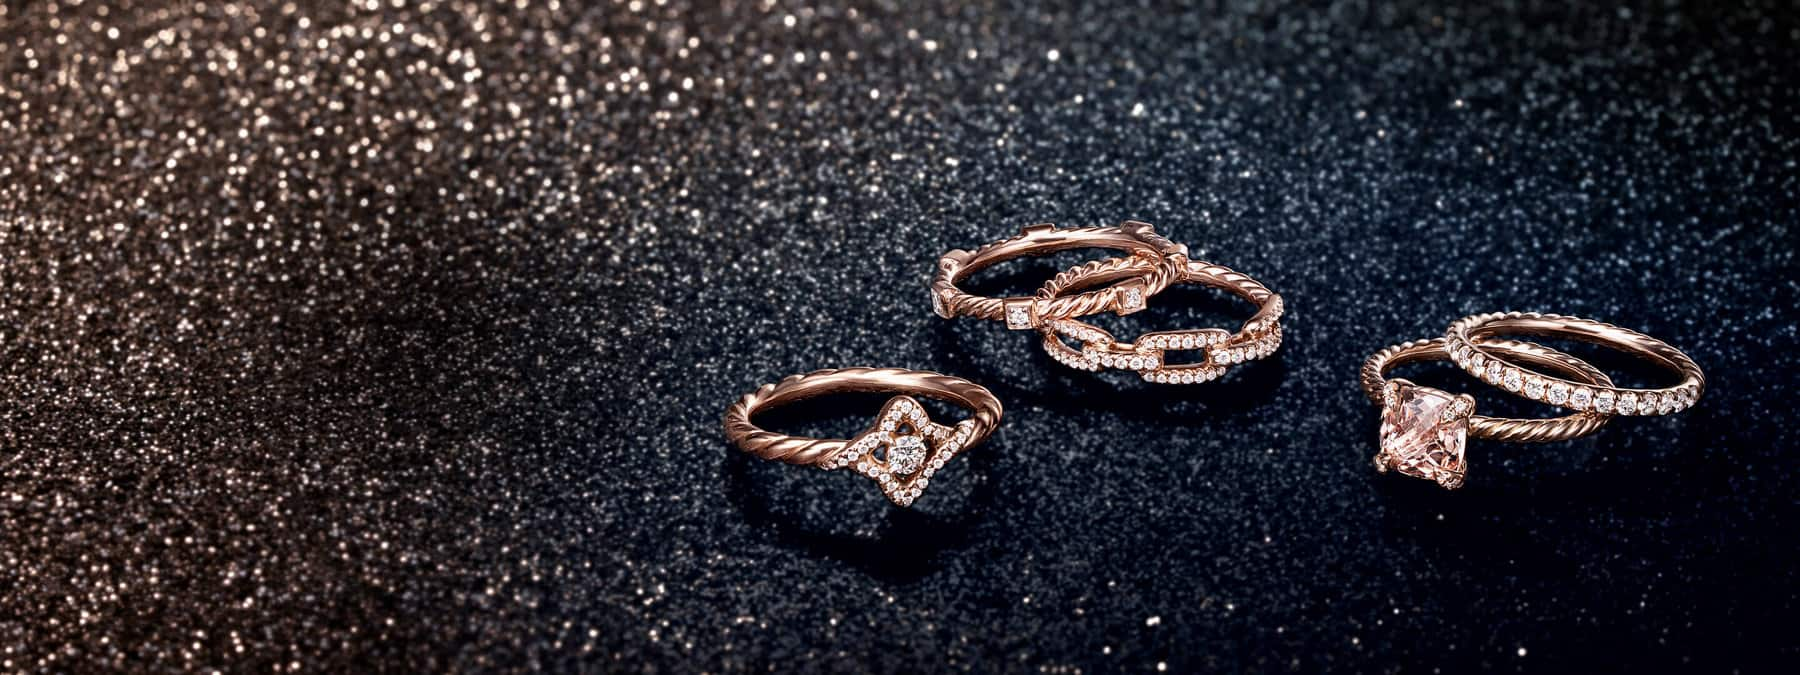 A color photograph shows five David Yurman rings scattered on top of a black glittery surface. The jewelry is crafted from 18K rose gold with or without morganite and pavé white diamonds.